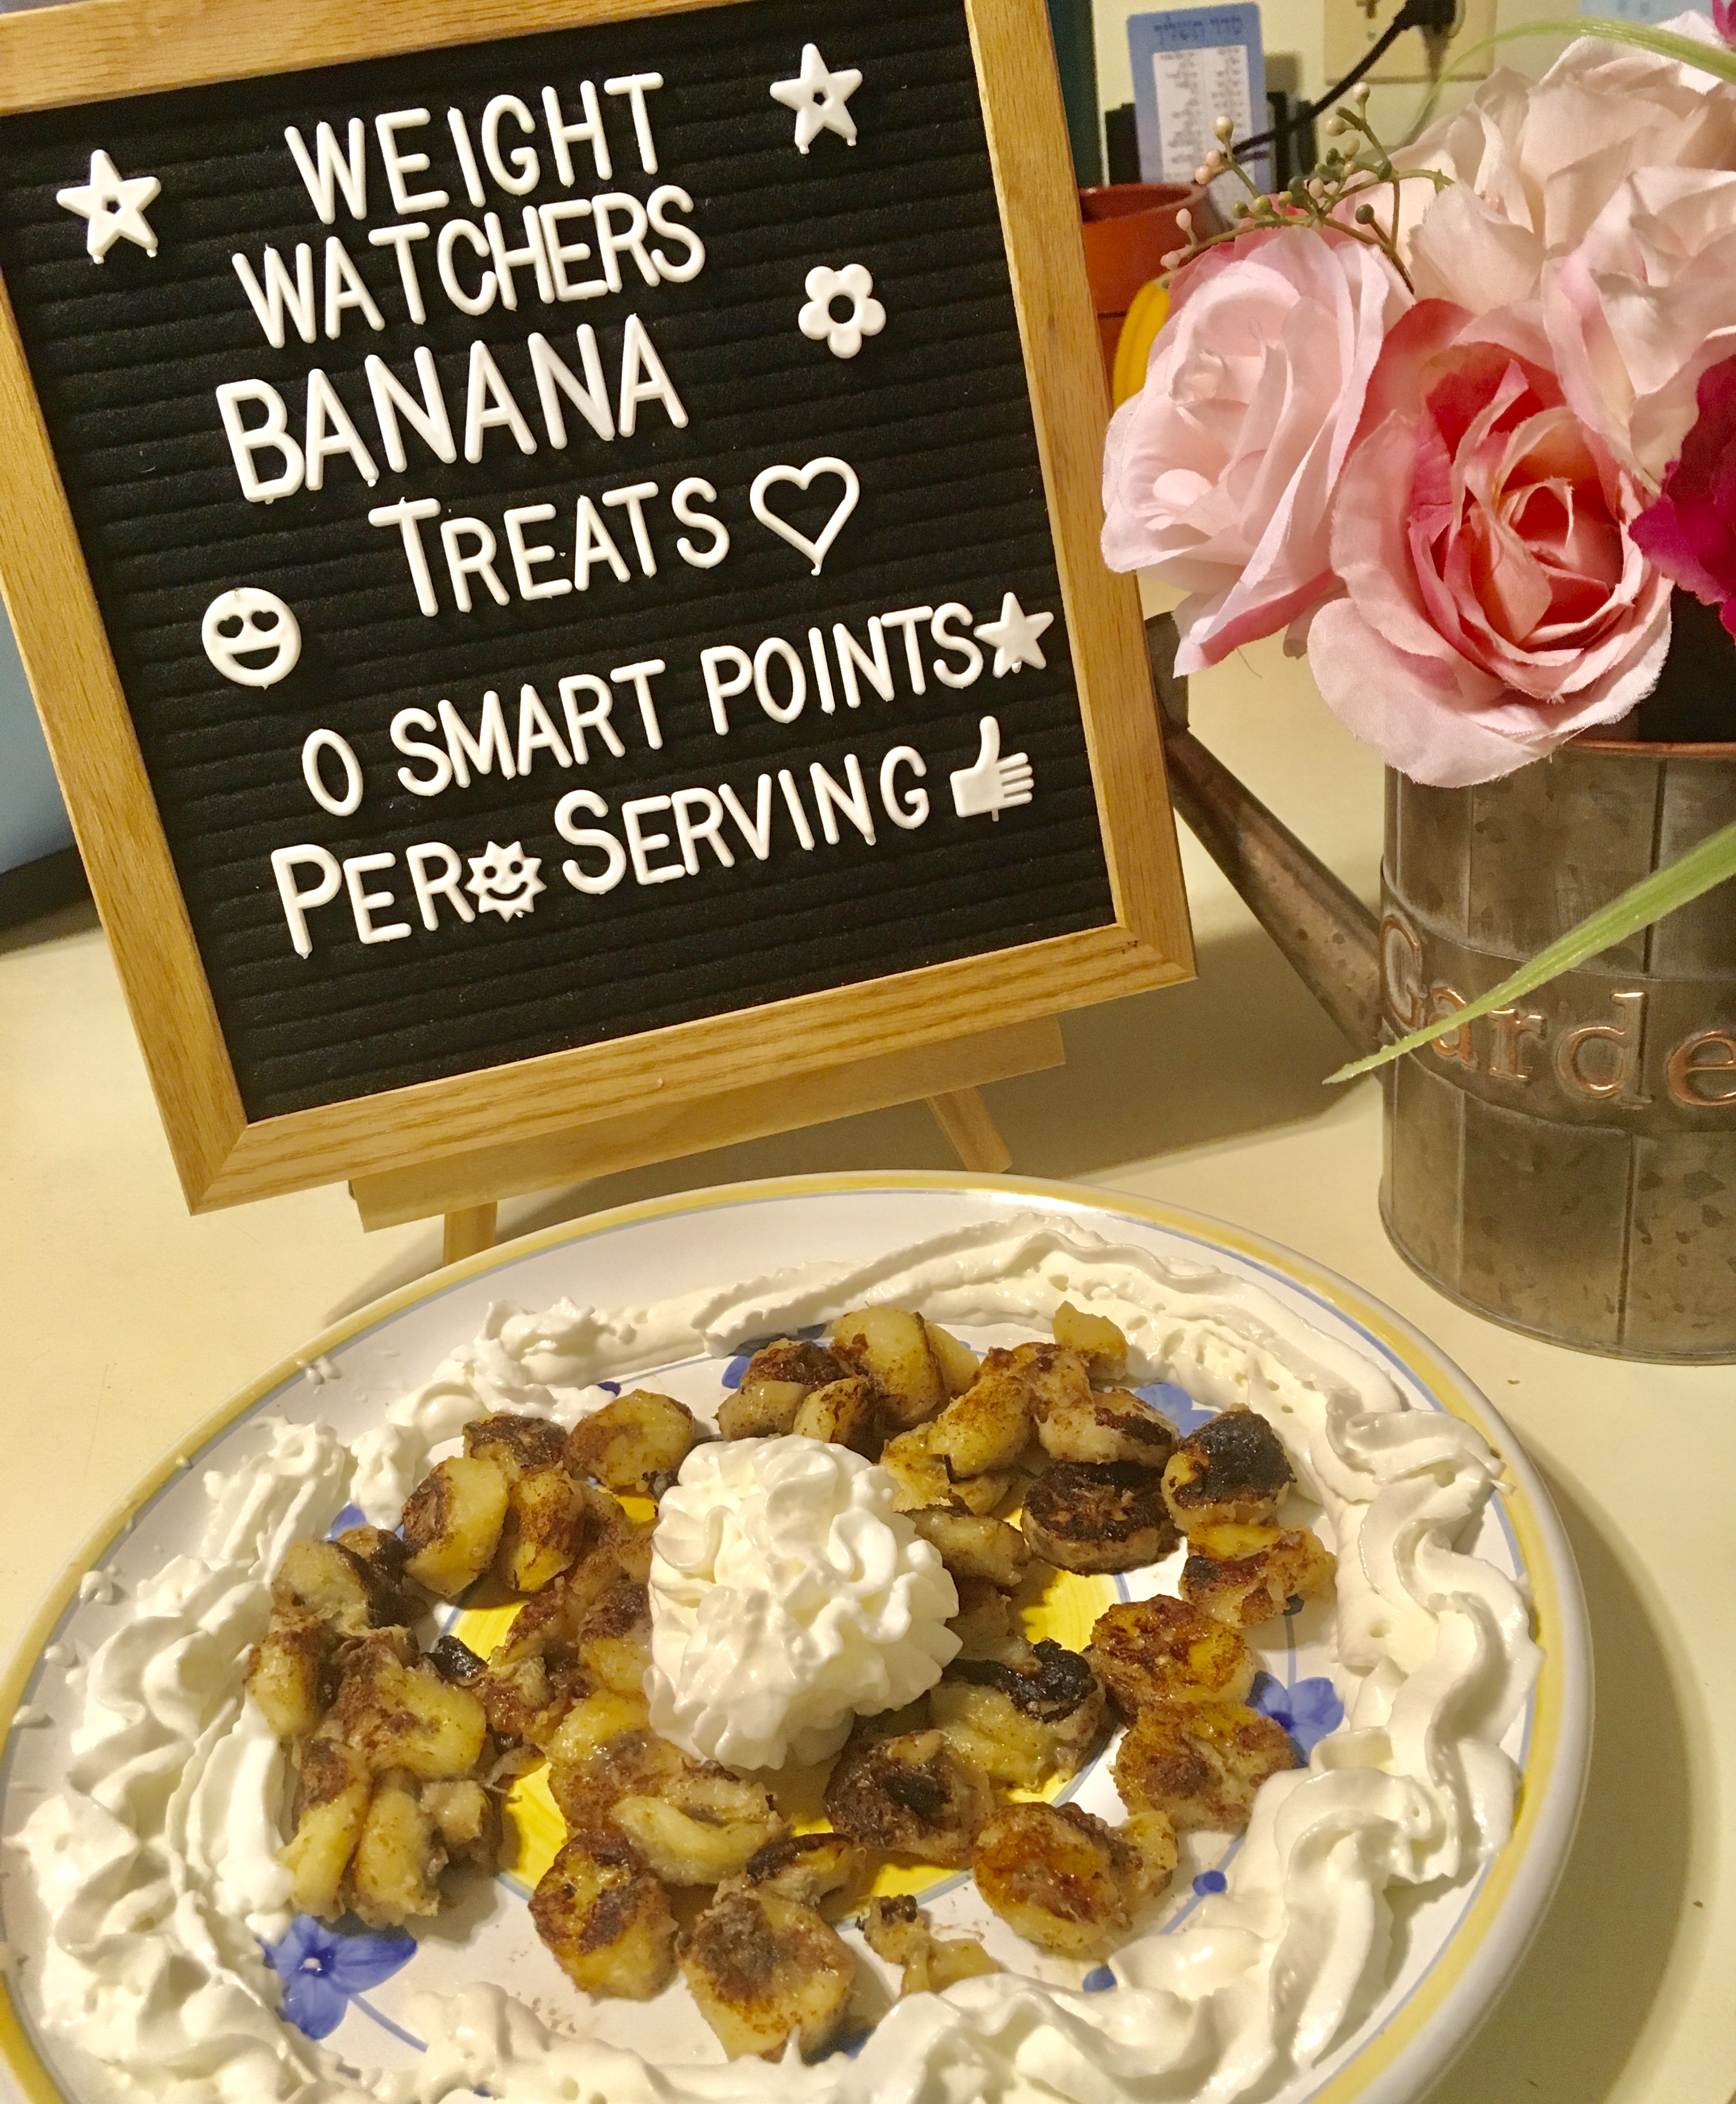 Weight Watchers Banana Treats Recipe is just 0 points per serving